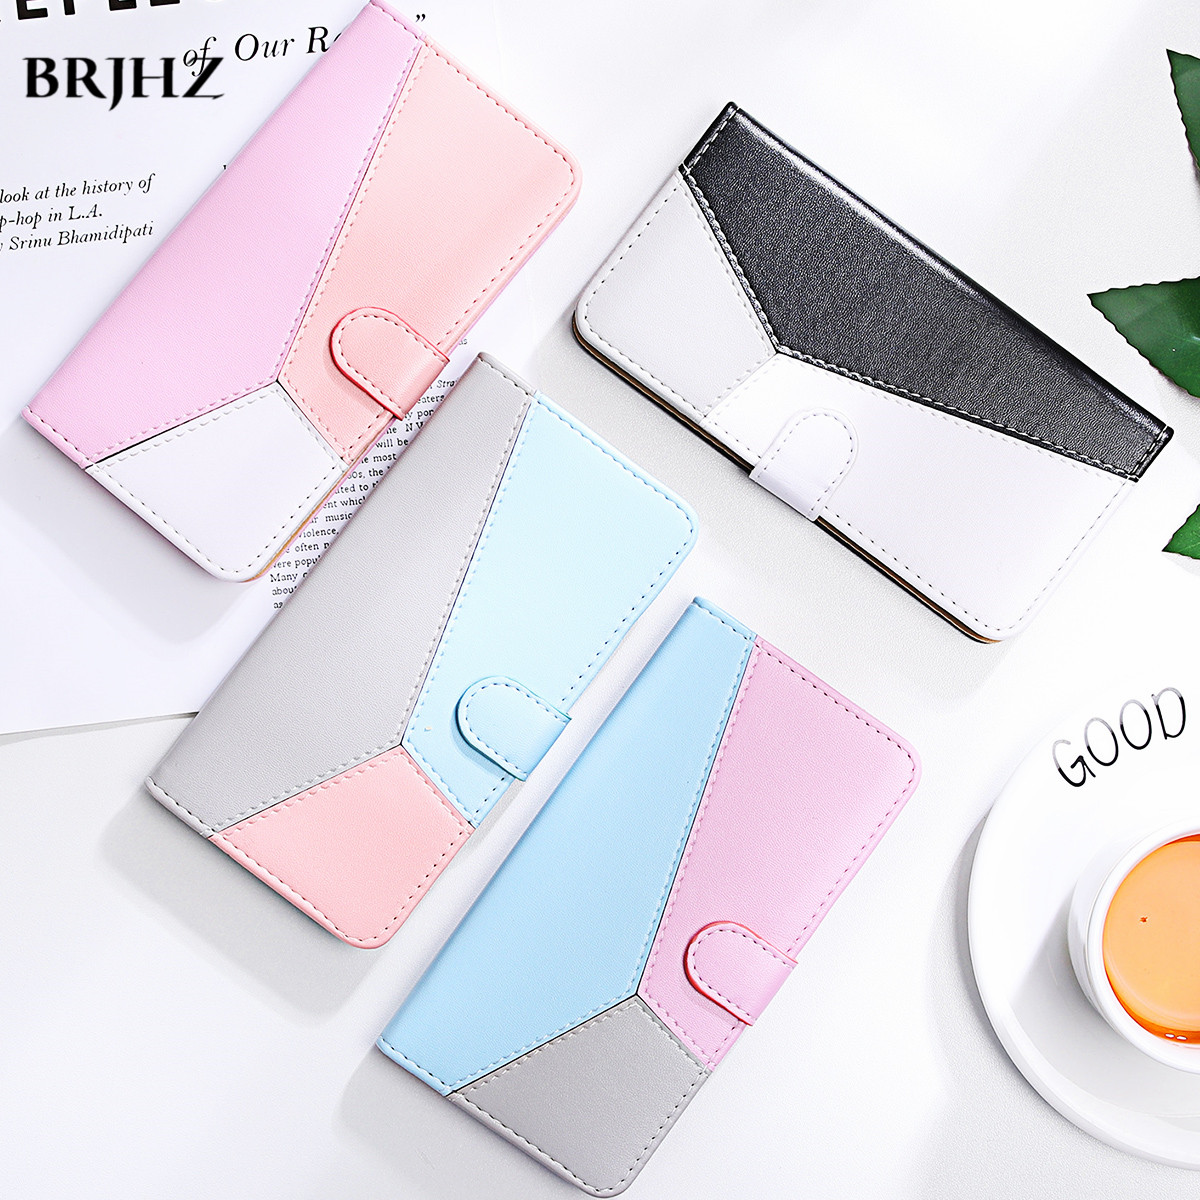 For <font><b>iPhone</b></font> 5 <font><b>5s</b></font> <font><b>Case</b></font> Leather Flip <font><b>Case</b></font> for <font><b>iPhone</b></font> 11 Pro XS Max <font><b>Wallet</b></font> Magnetic Cover for <font><b>iPhone</b></font> 8 7 6S 6 Plus XR X Phone <font><b>Cases</b></font> image